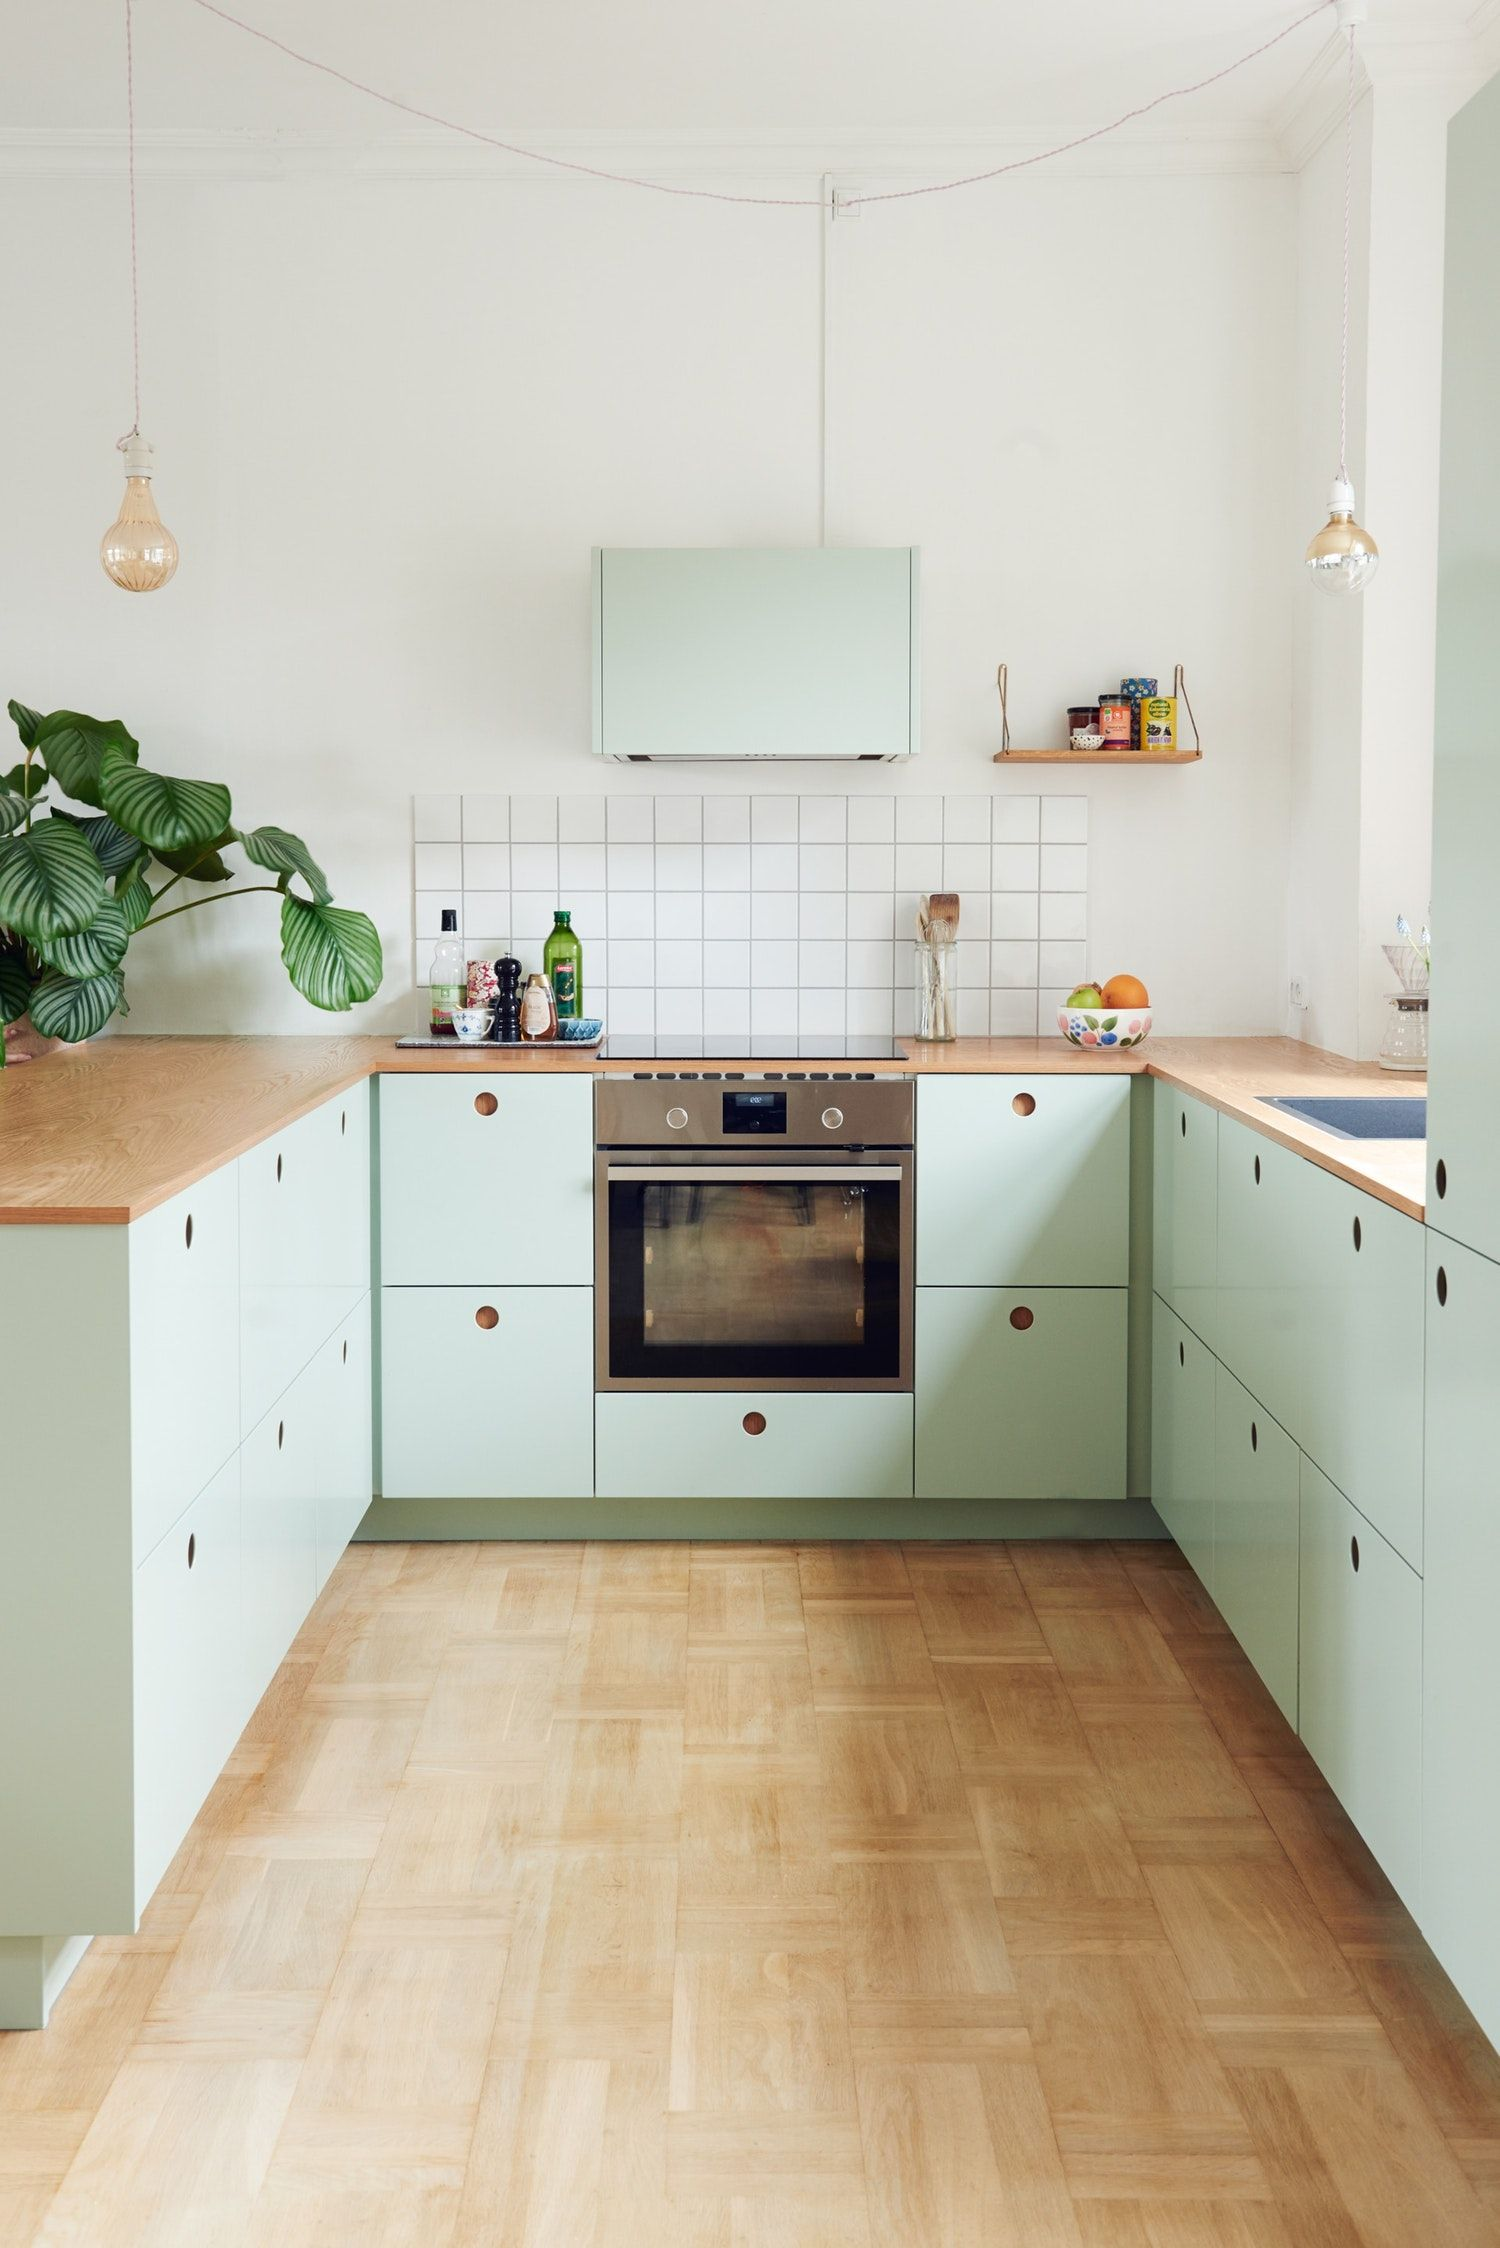 Kitchens Without Upper Cabinets Should You Go Without Modern Kitchen Upgrades Kitchens Without Upper Cabinets Kitchen Design